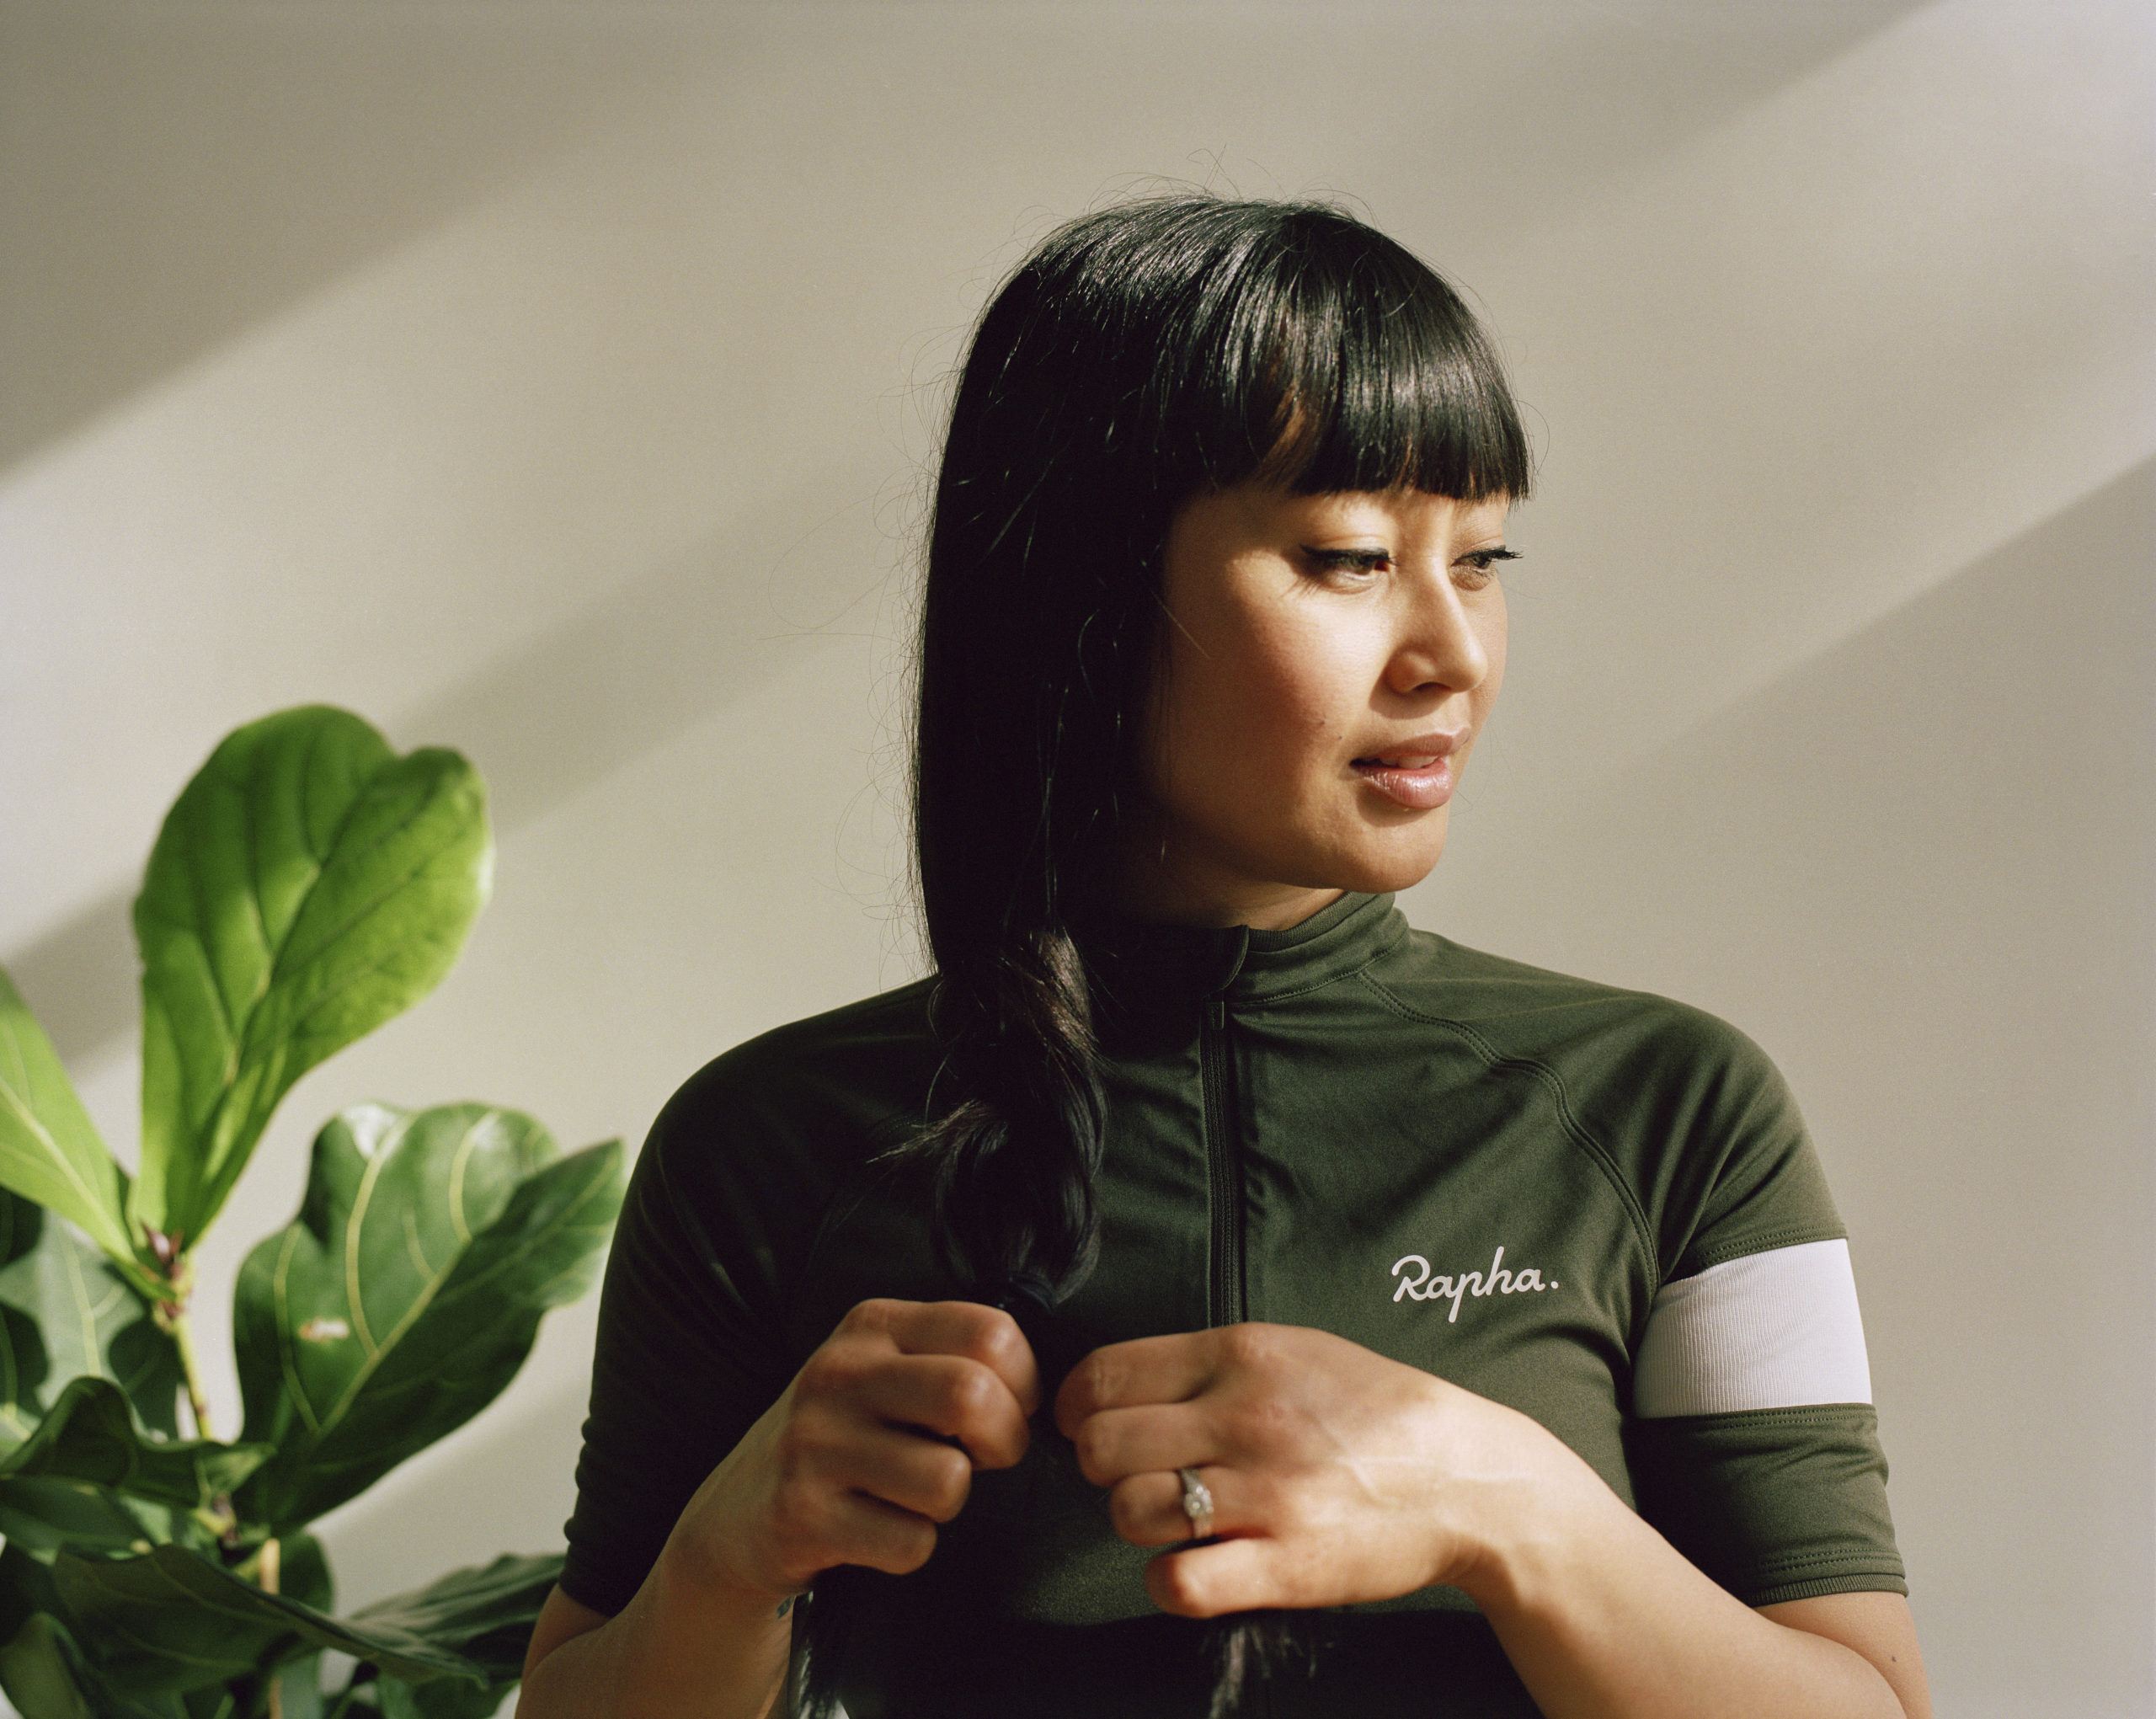 Rapha collection - femme